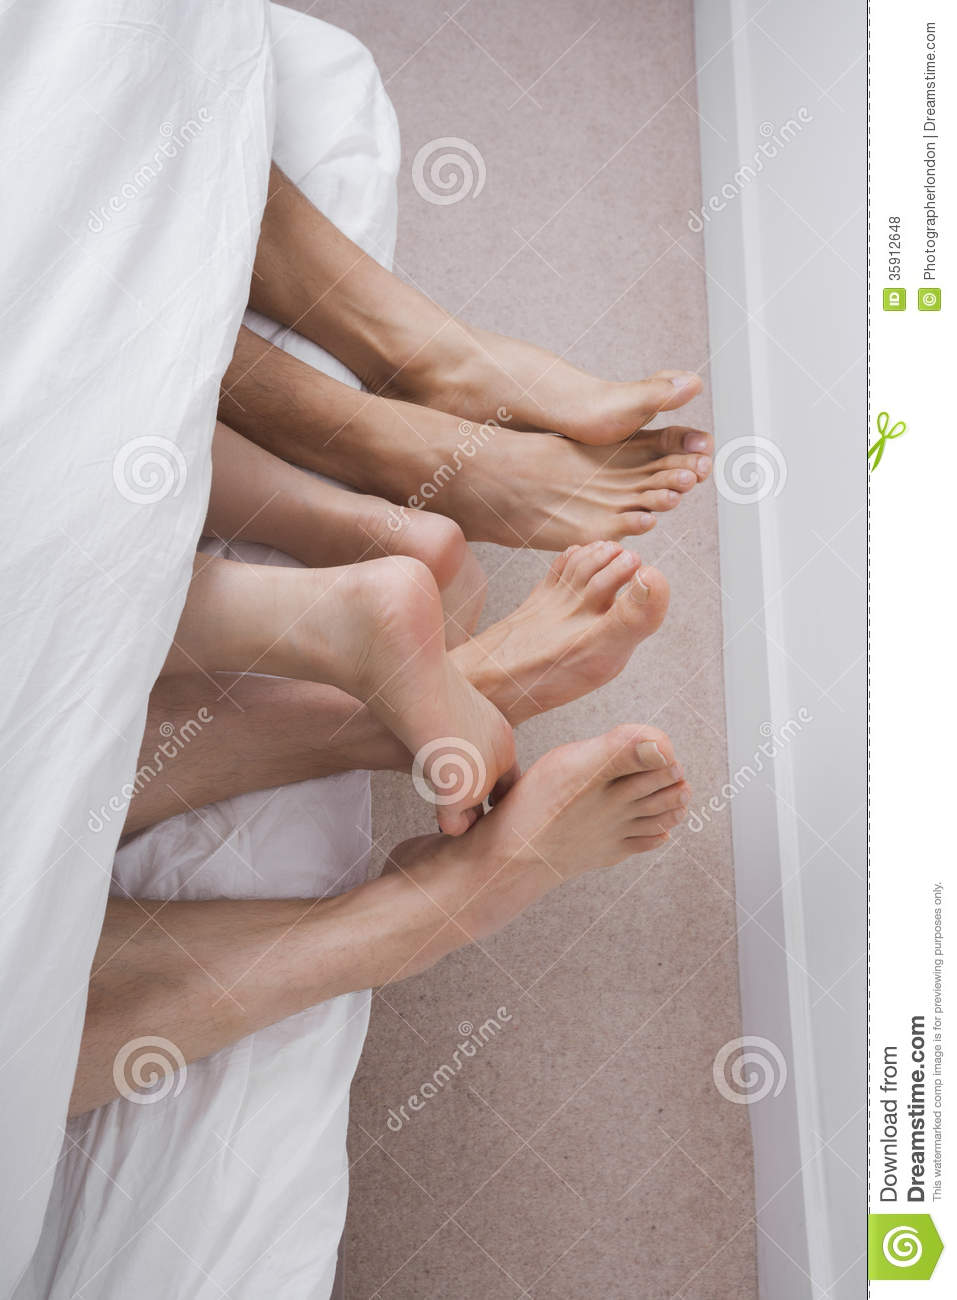 ... Two Men With Woman In Bed Royalty Free Stock Photos - Image: 35912648